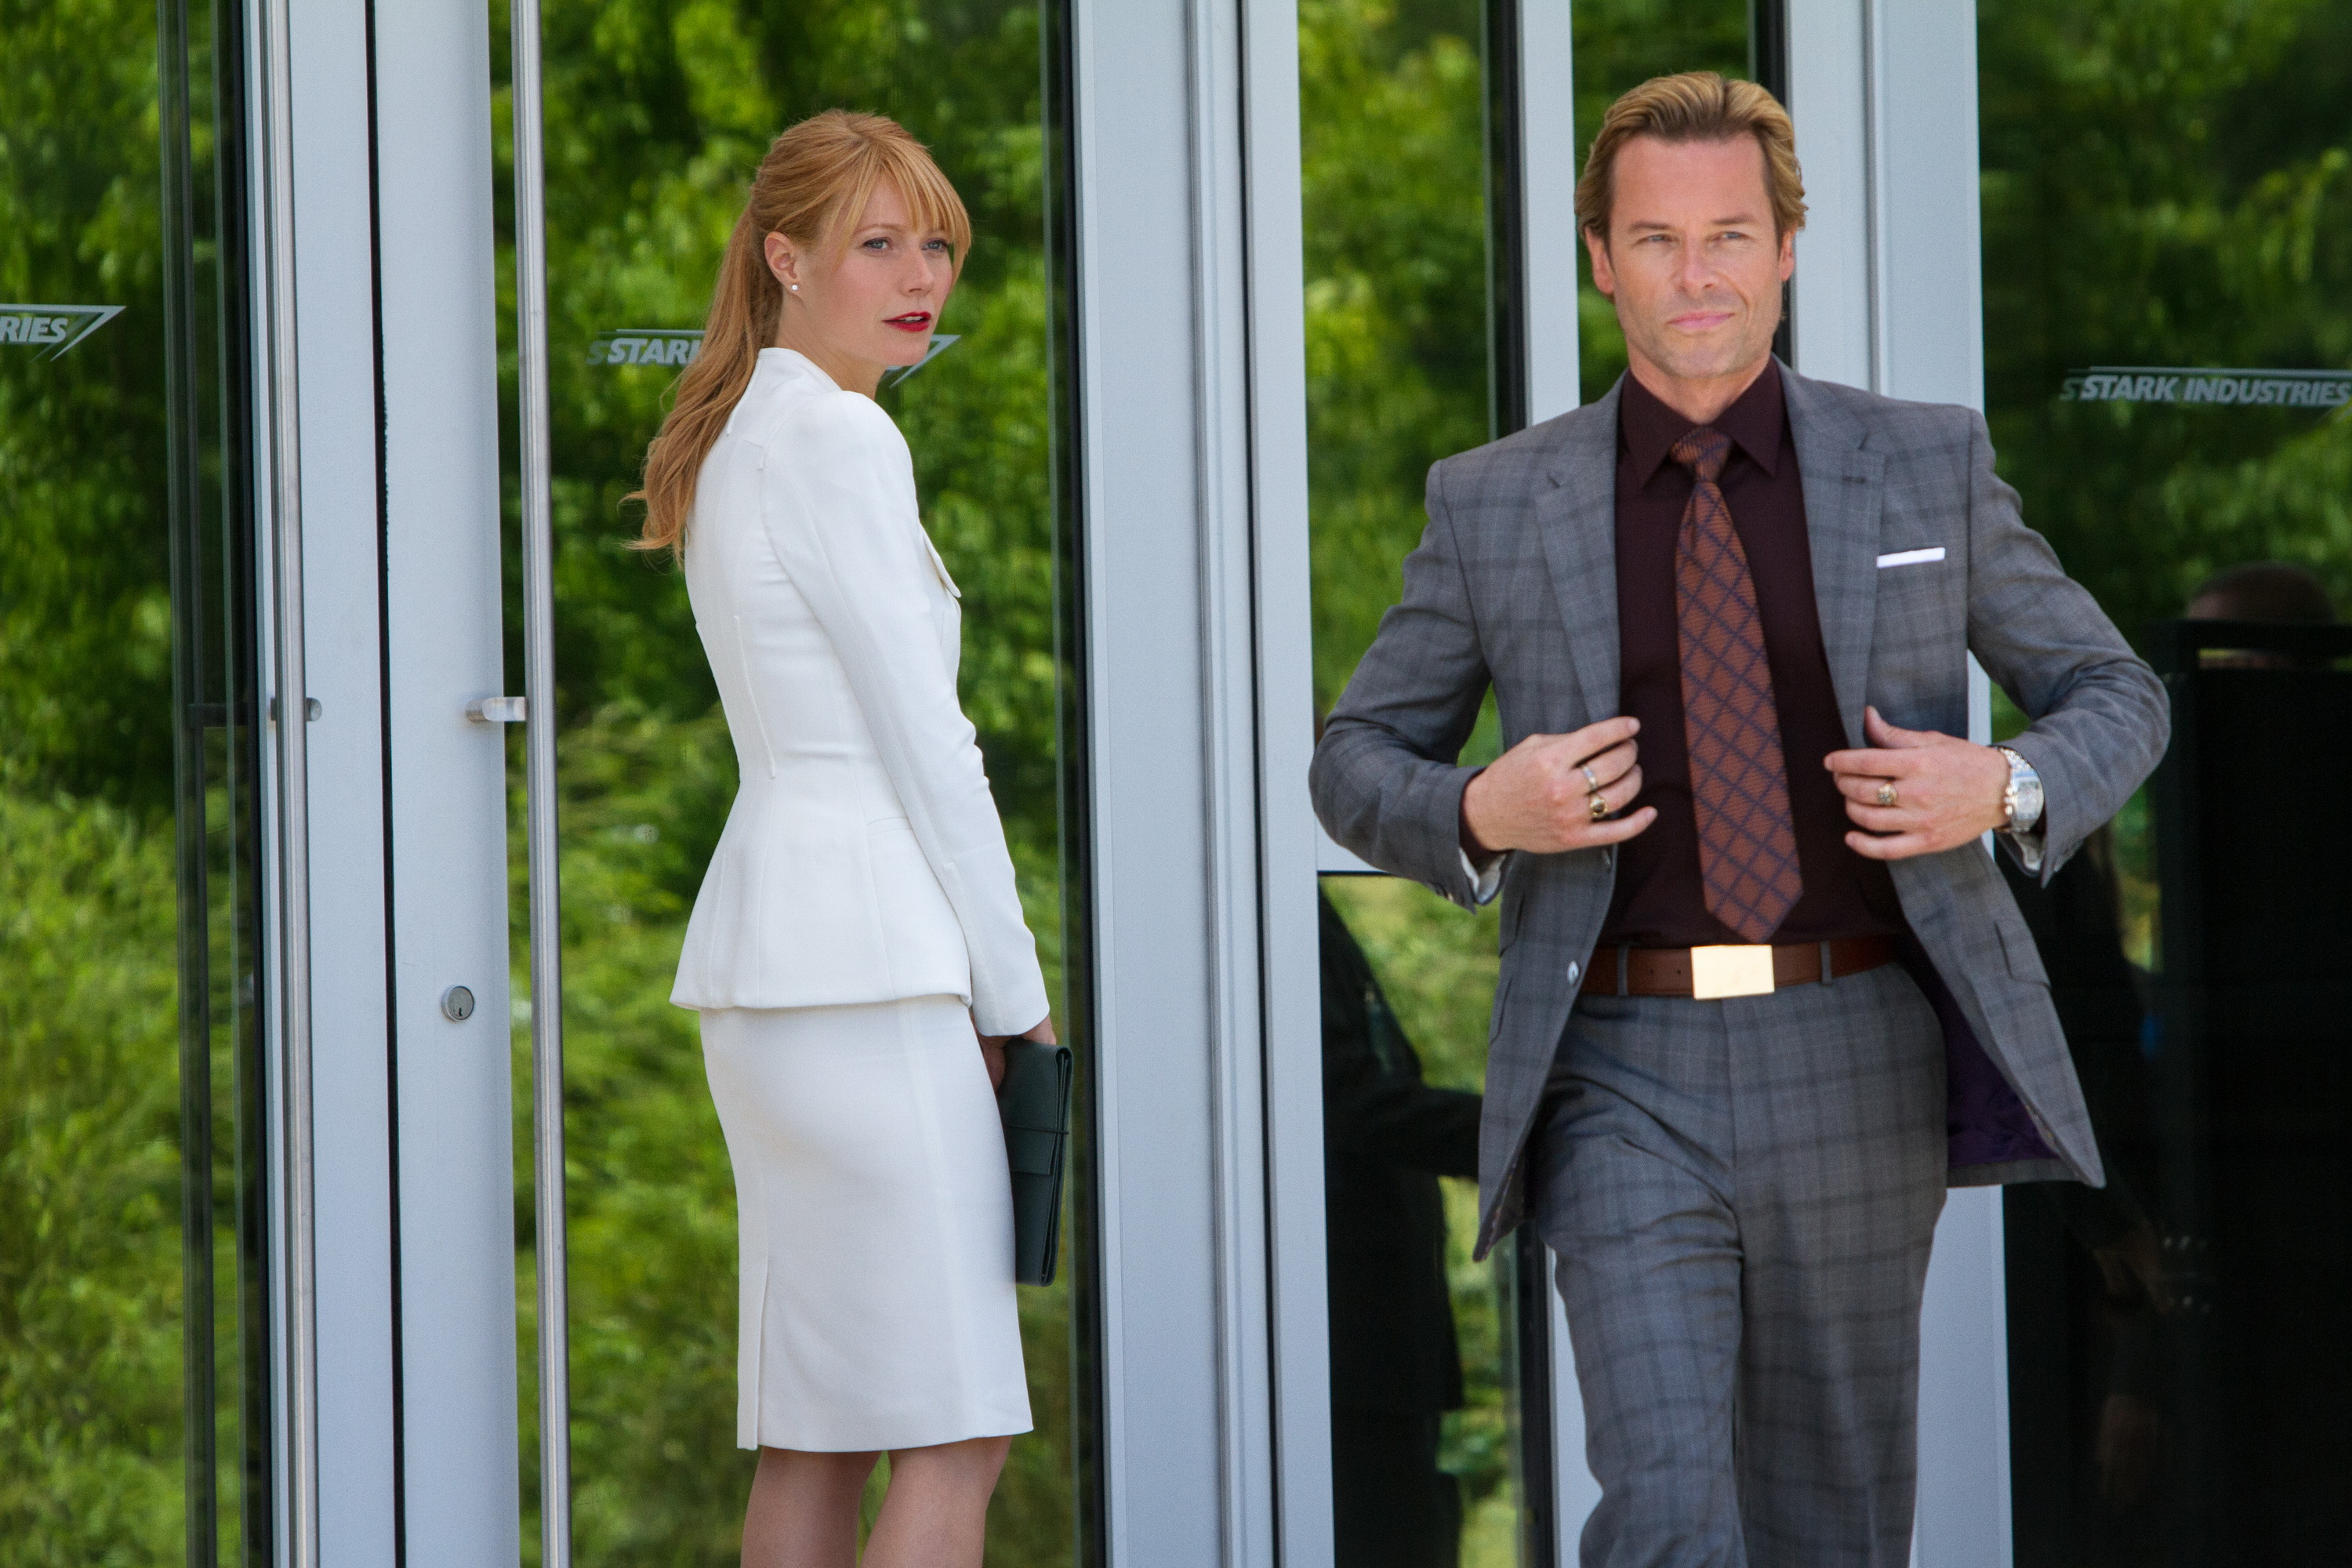 Gwyneth Paltrow and Guy Pearce star in 'Iron Man 3'.